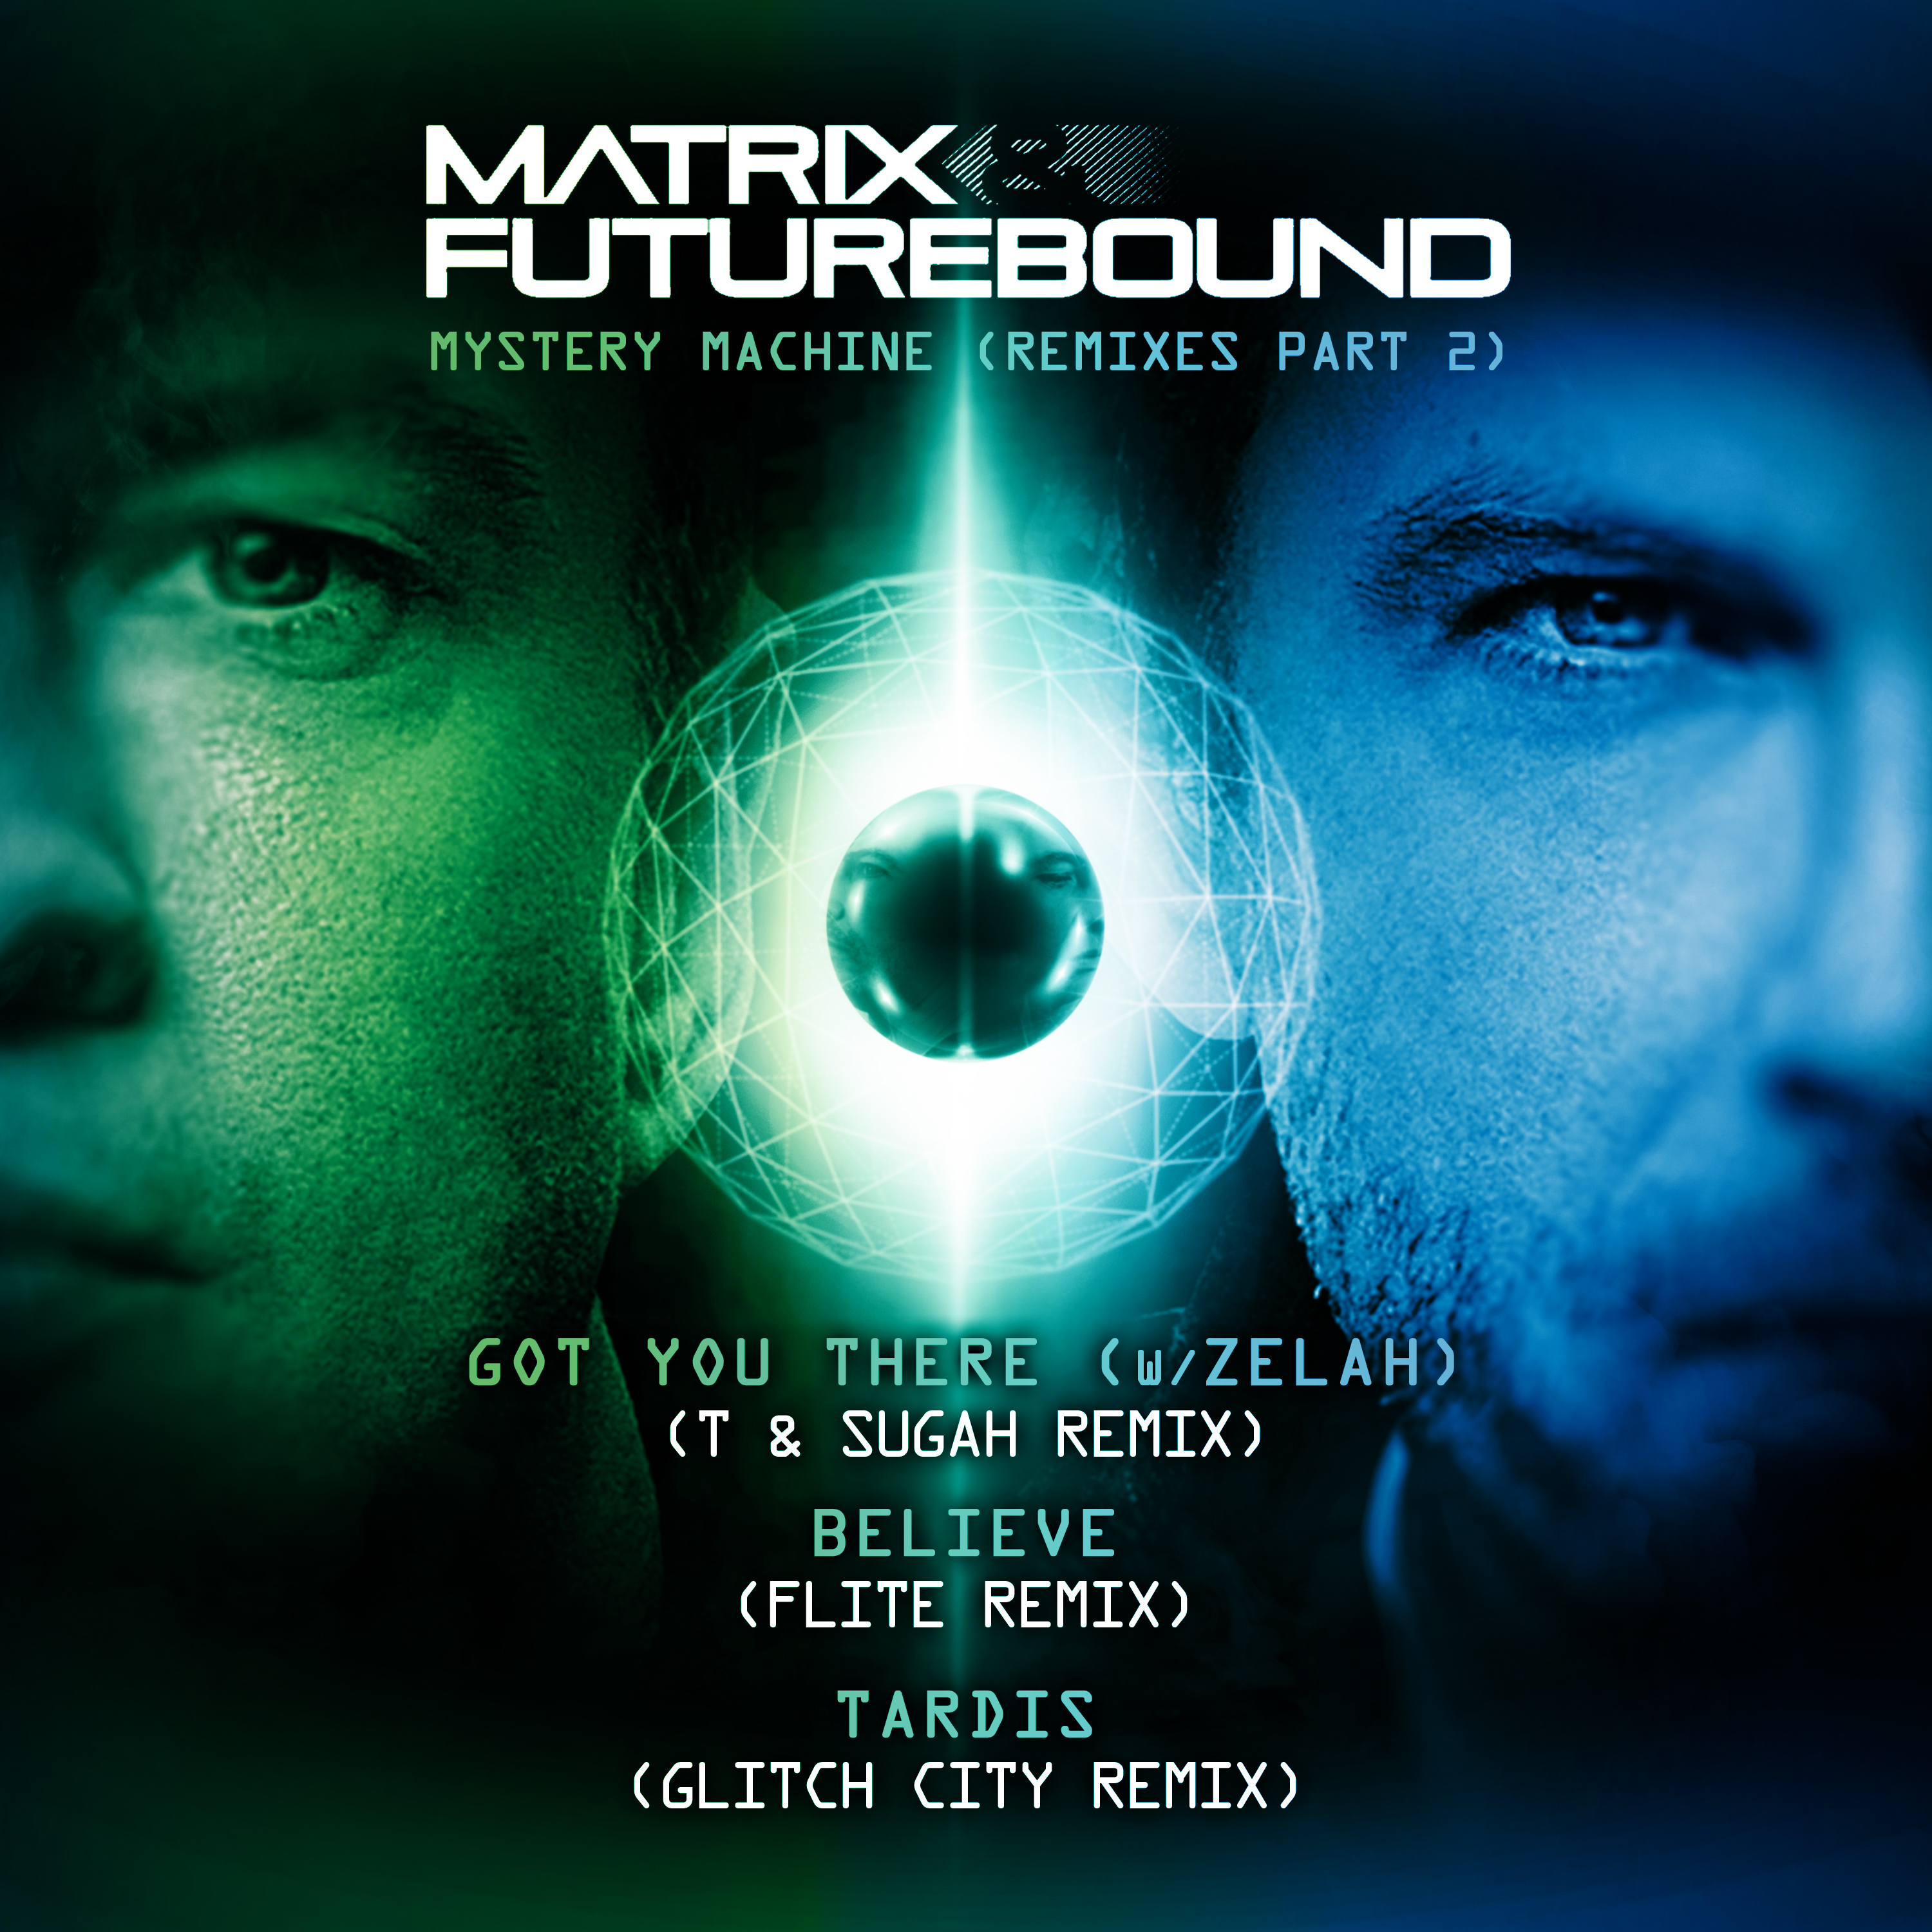 Matrix & Futurebound - Mystery Machine Remixes Part 2